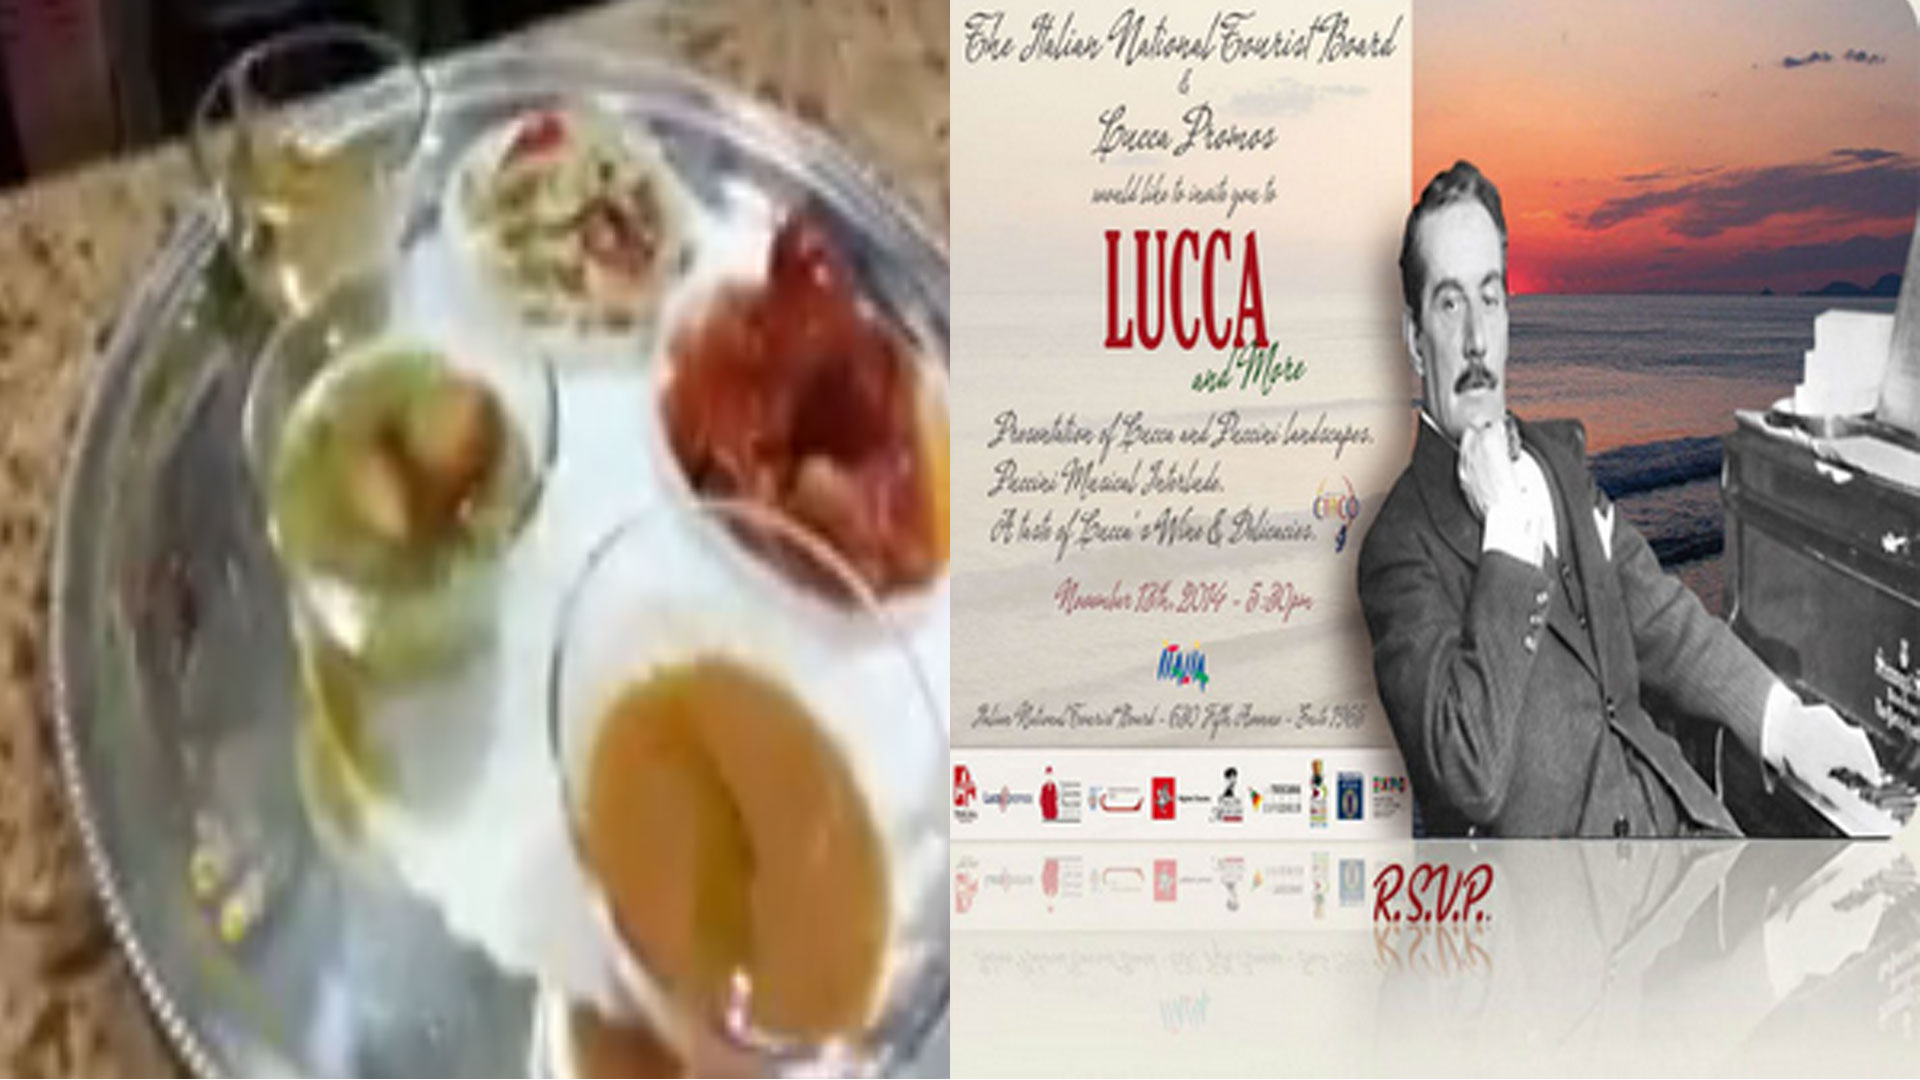 Outstanding Food from Lucca.